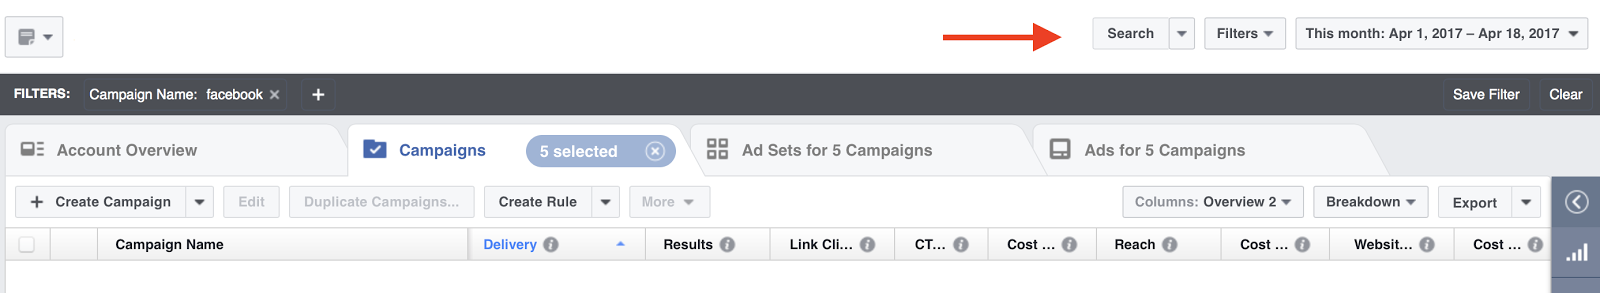 Facebook Ads Manager's search and filters